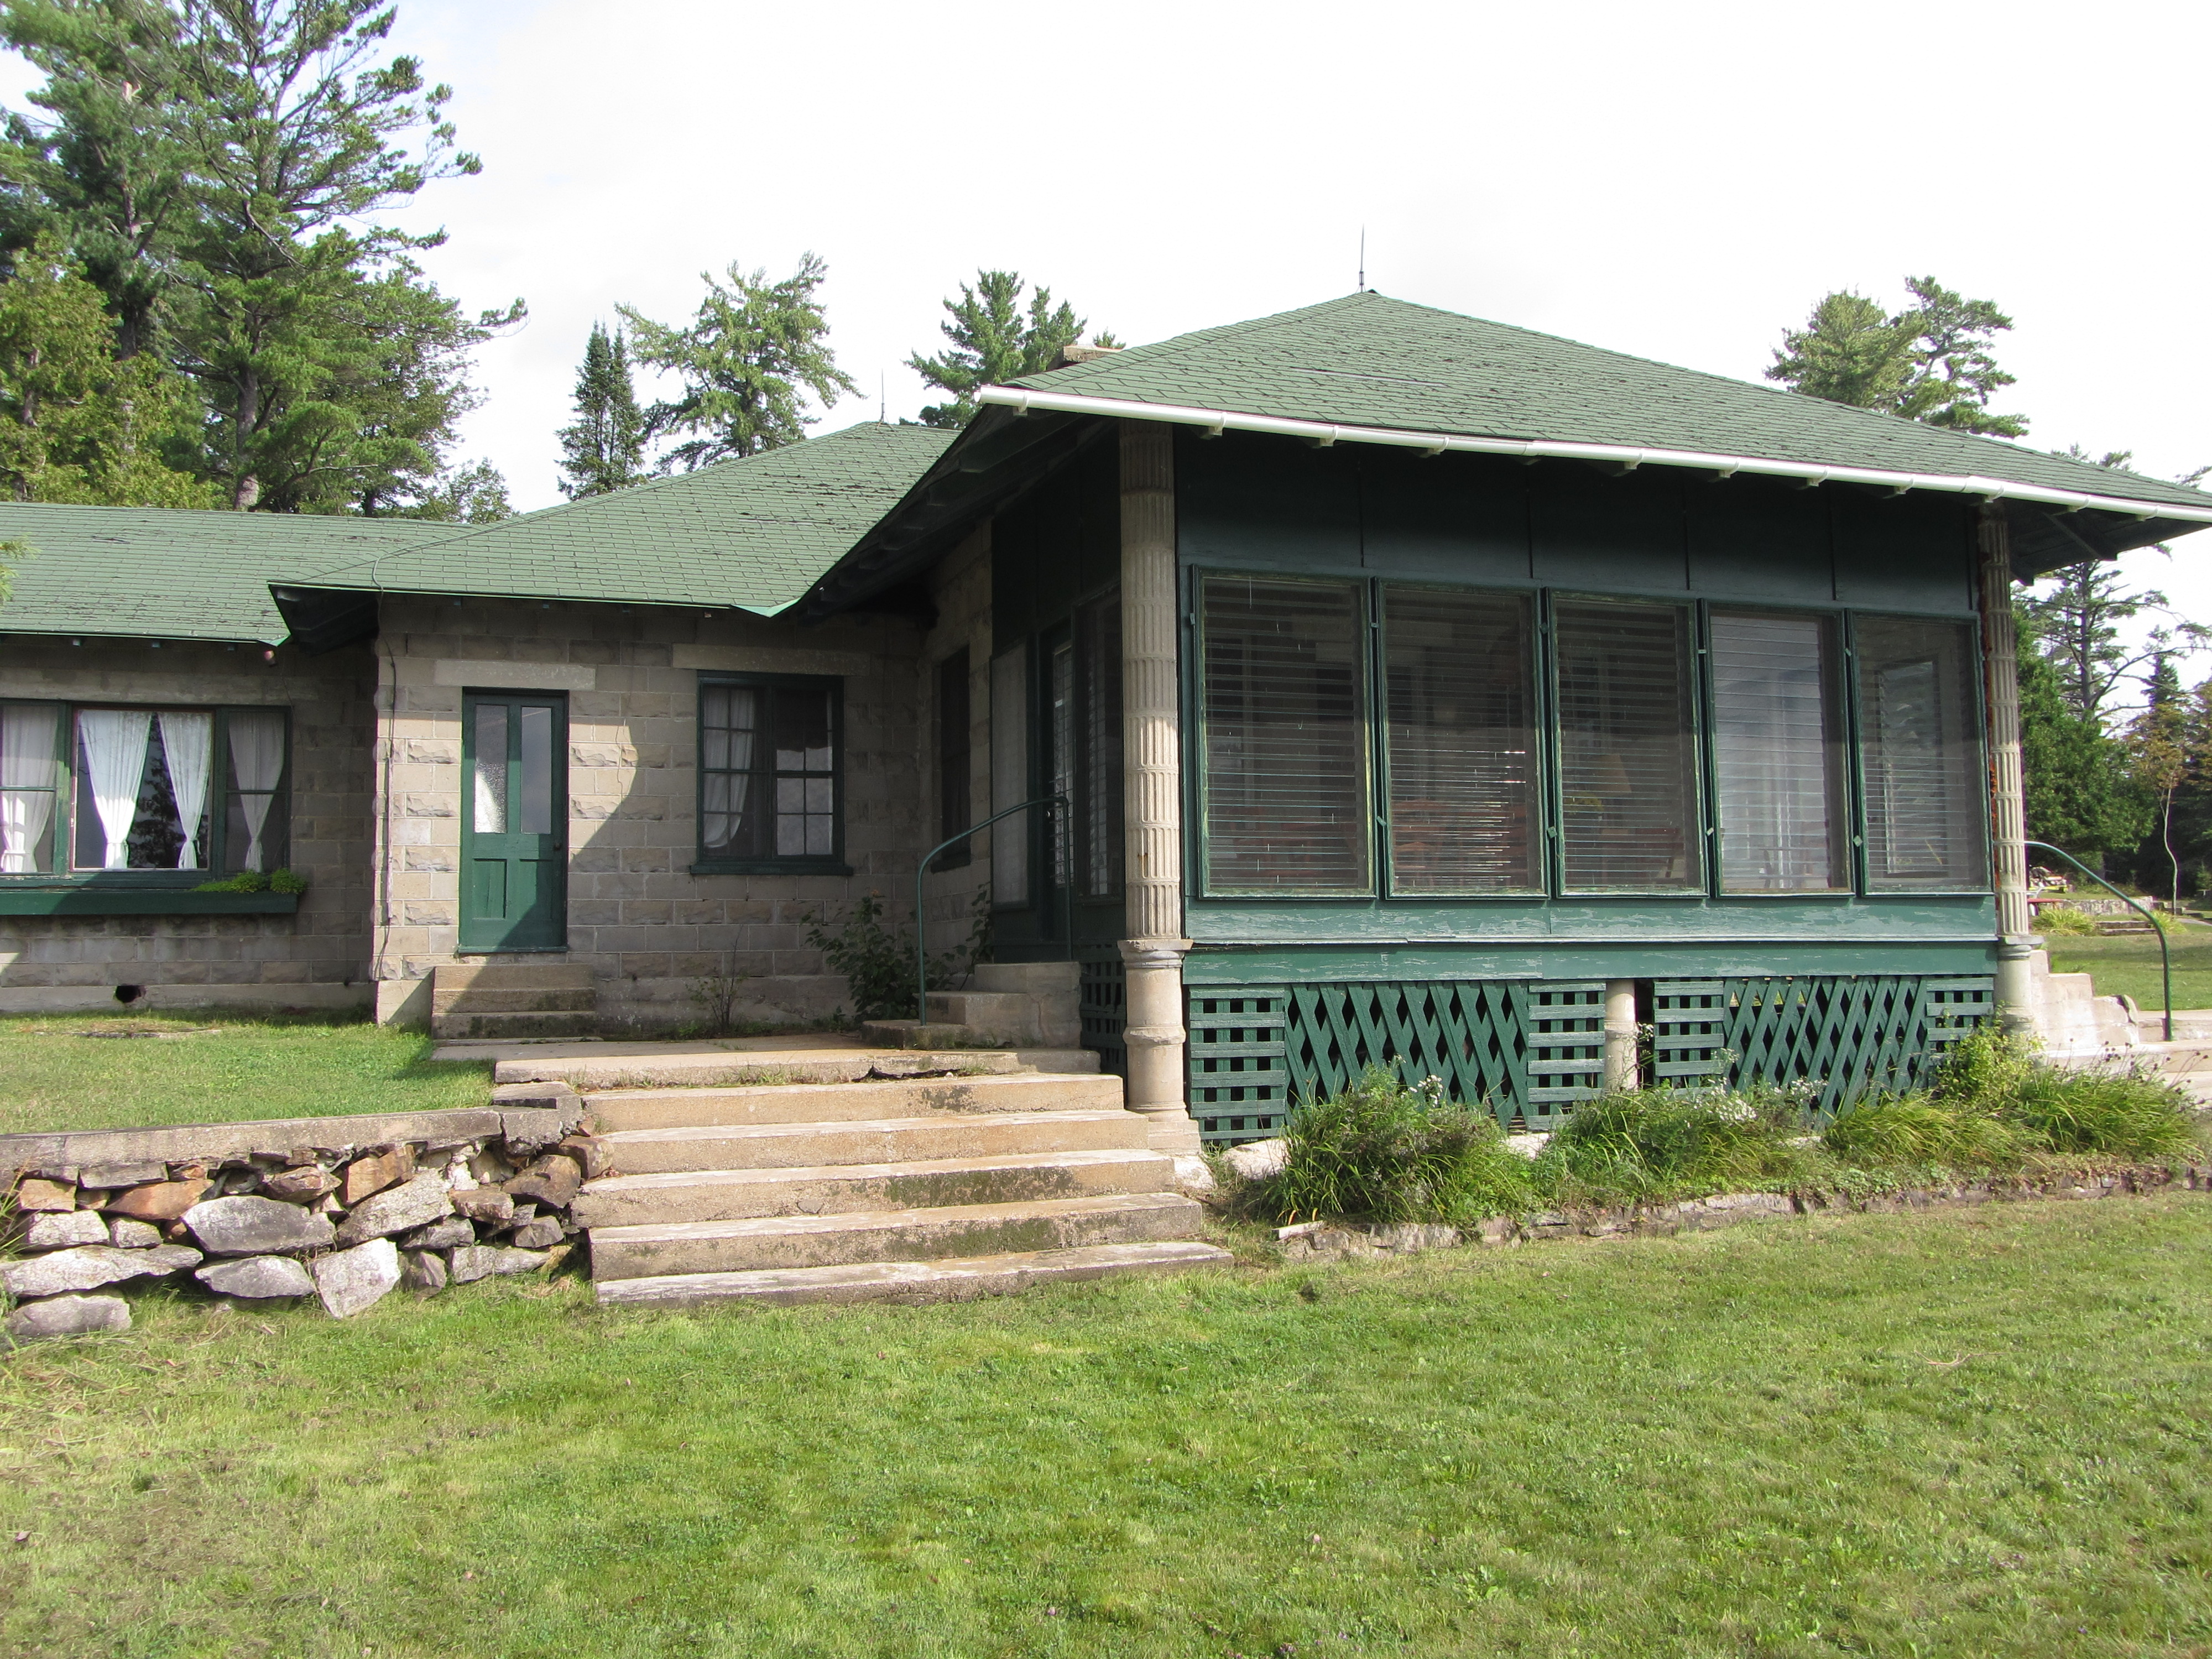 springs honeymoon cottages welcome to cabins beaver suites cottage unit view living eureka lake and